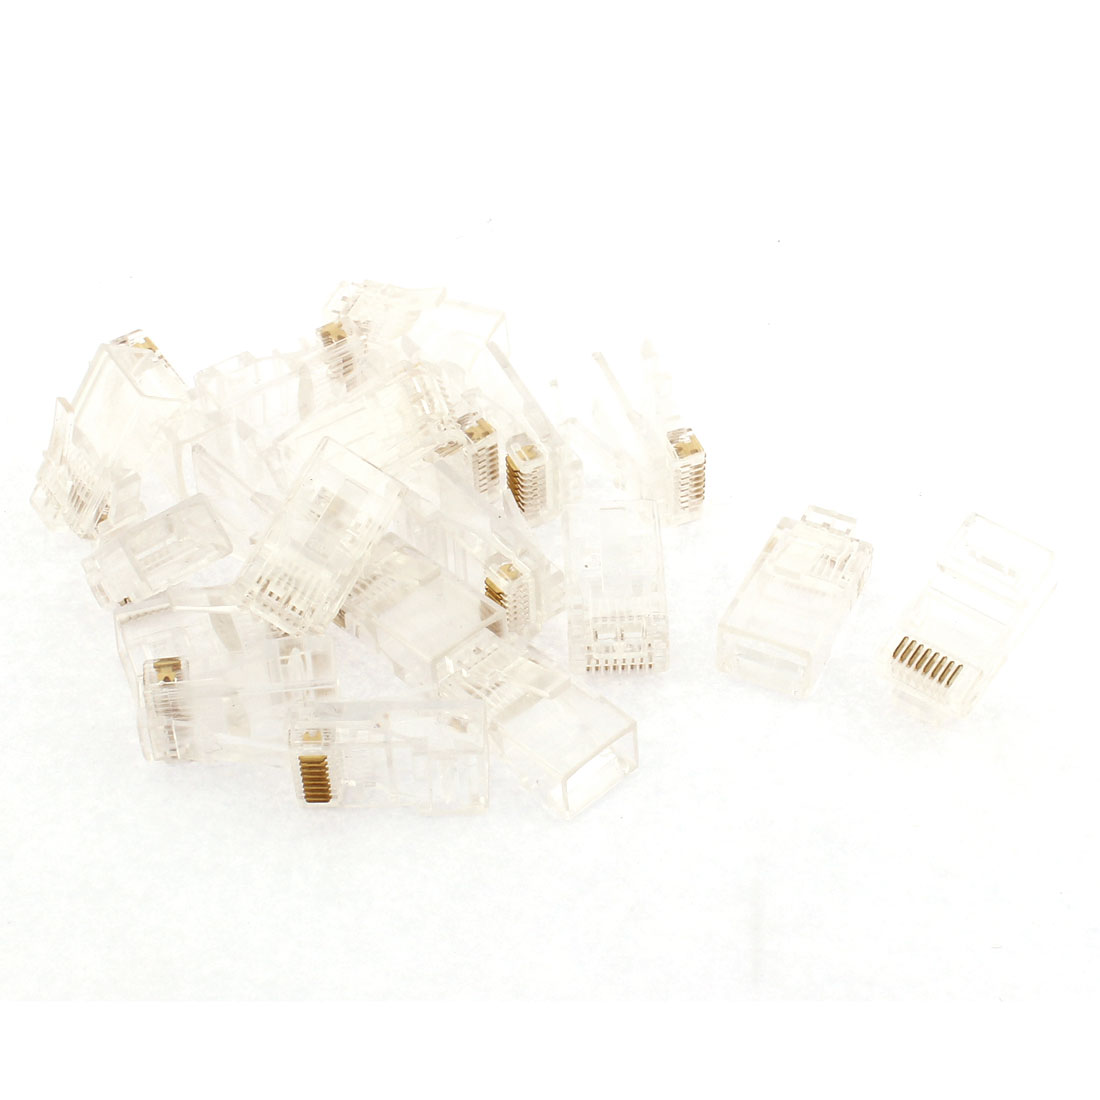 Network Cable CAT5e 8P8C Gold Plated RJ45 Connector Adapter Modular 20pcs